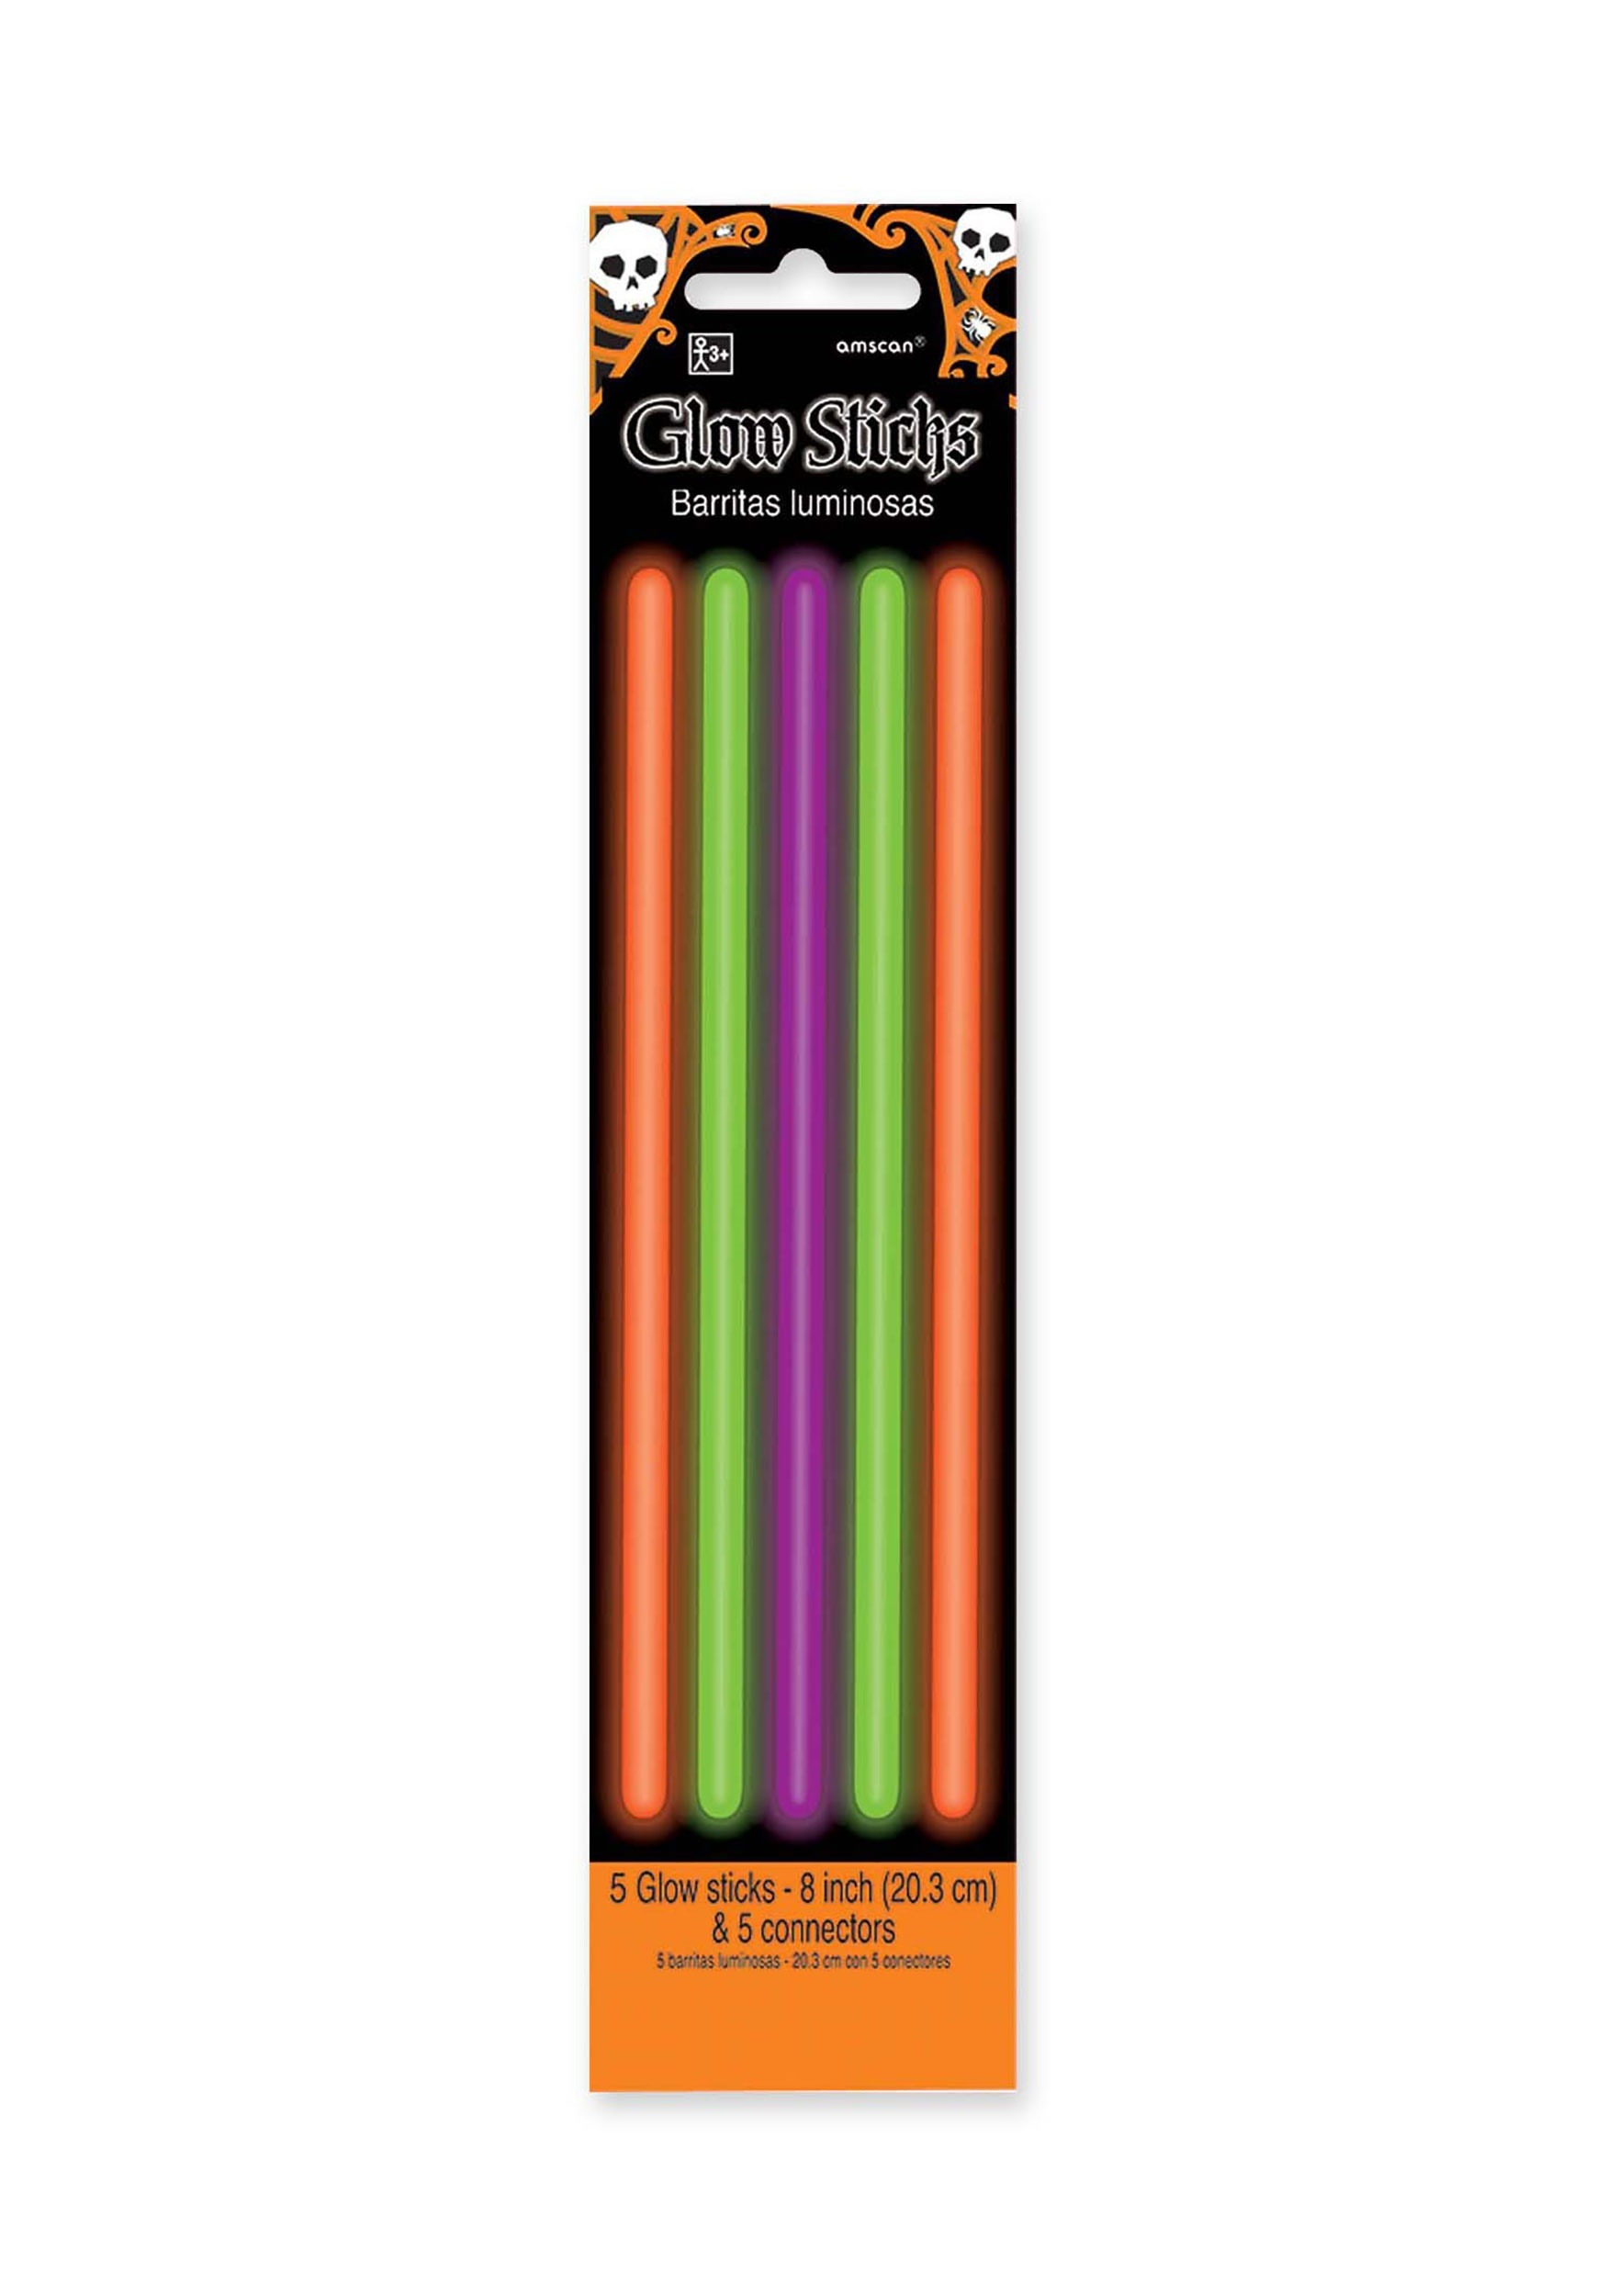 8_Inch_Glow_Sticks_(5_per_pack)